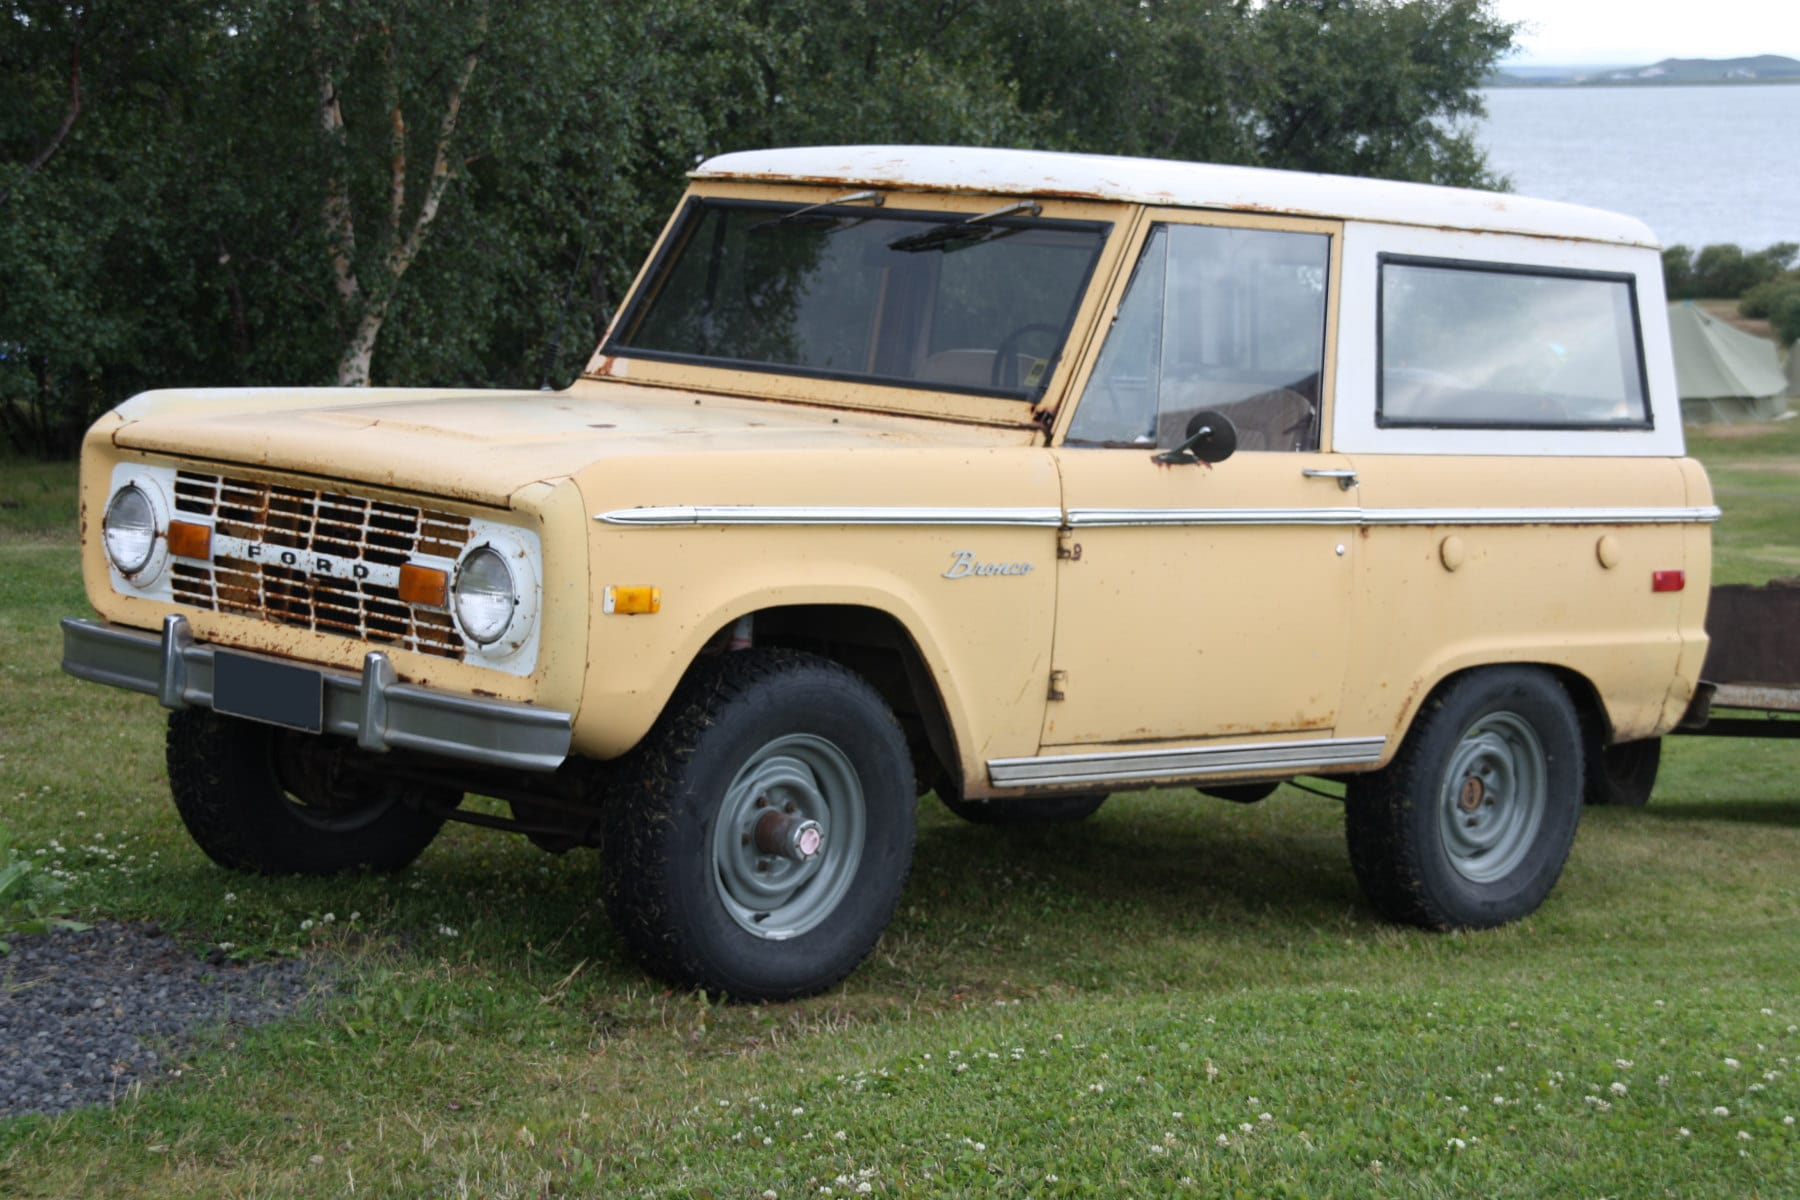 The evolution of the Ford Bronco